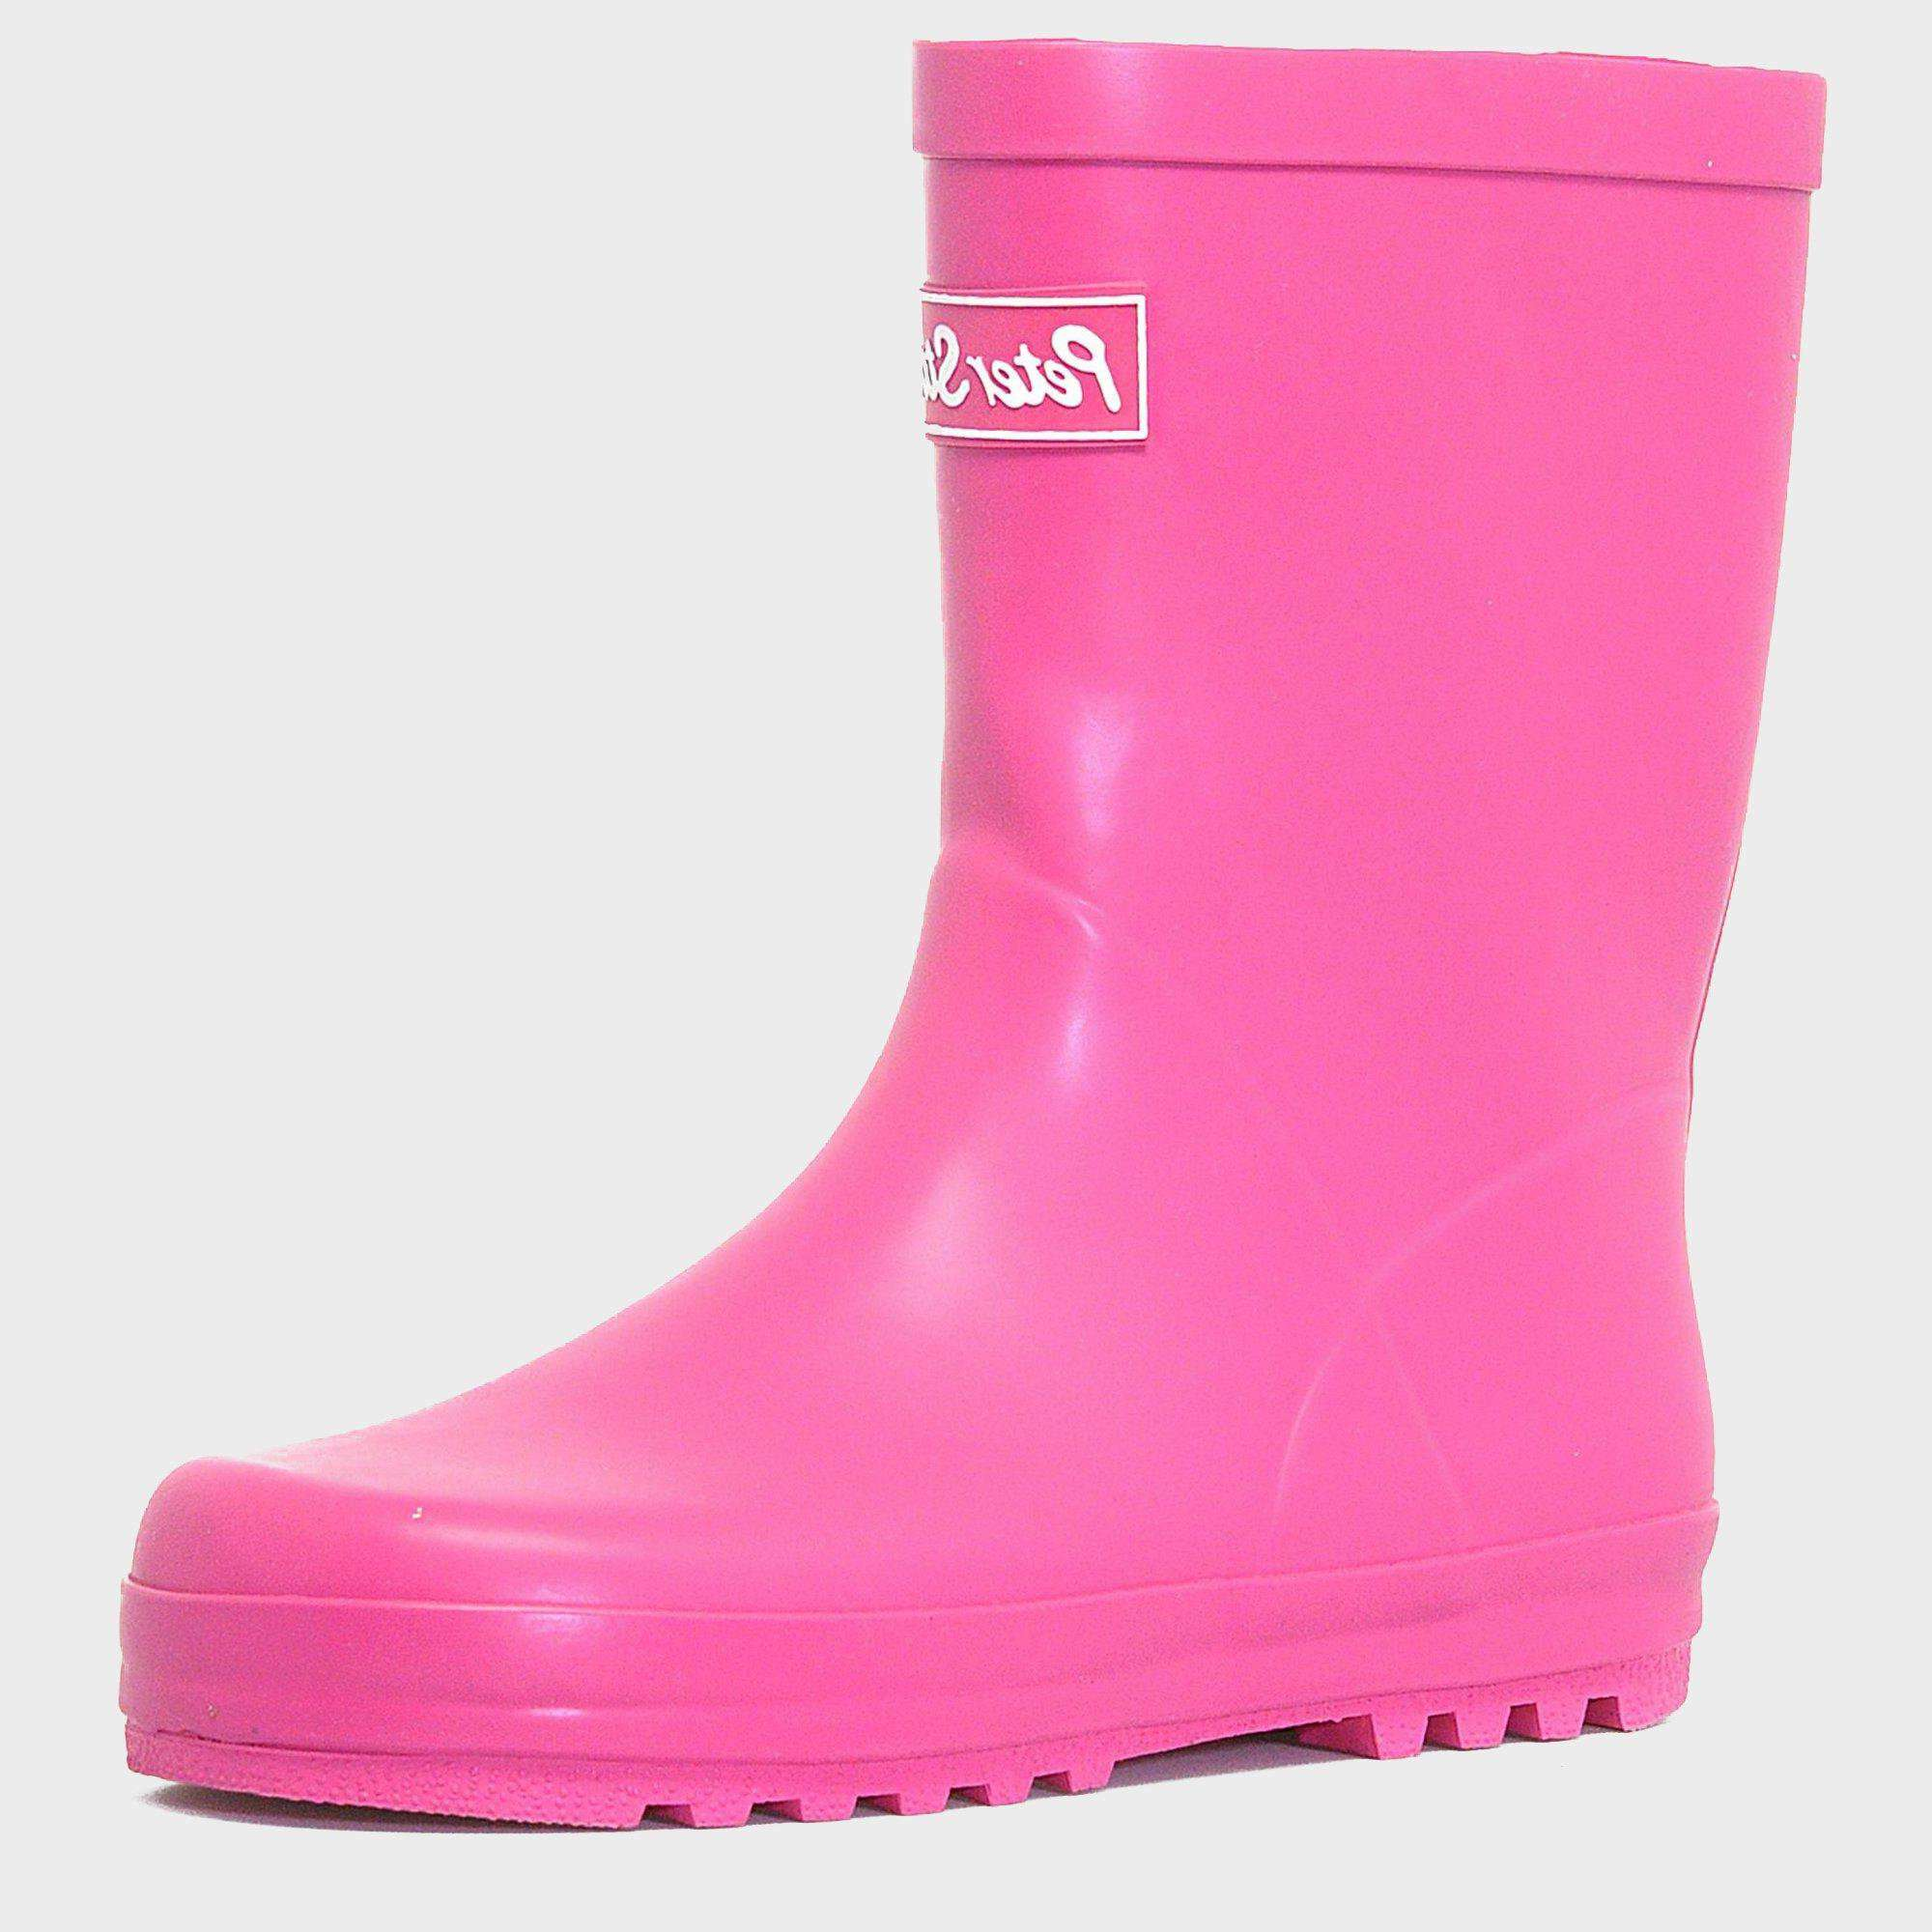 PETER STORM Girls' Trim Wellies